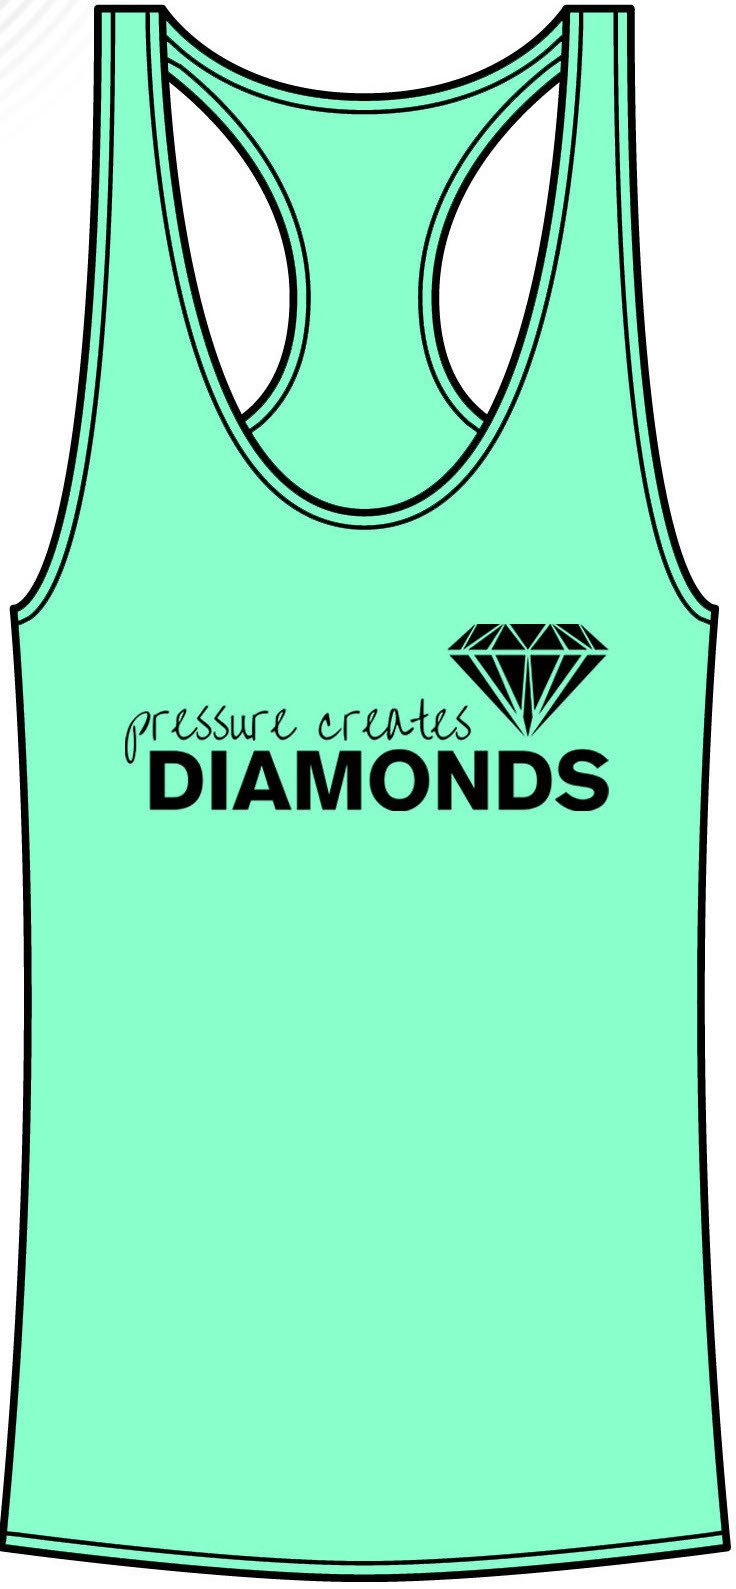 Pressure Creates Diamonds Tanktop- Mint - FitGirls_inspire - 4